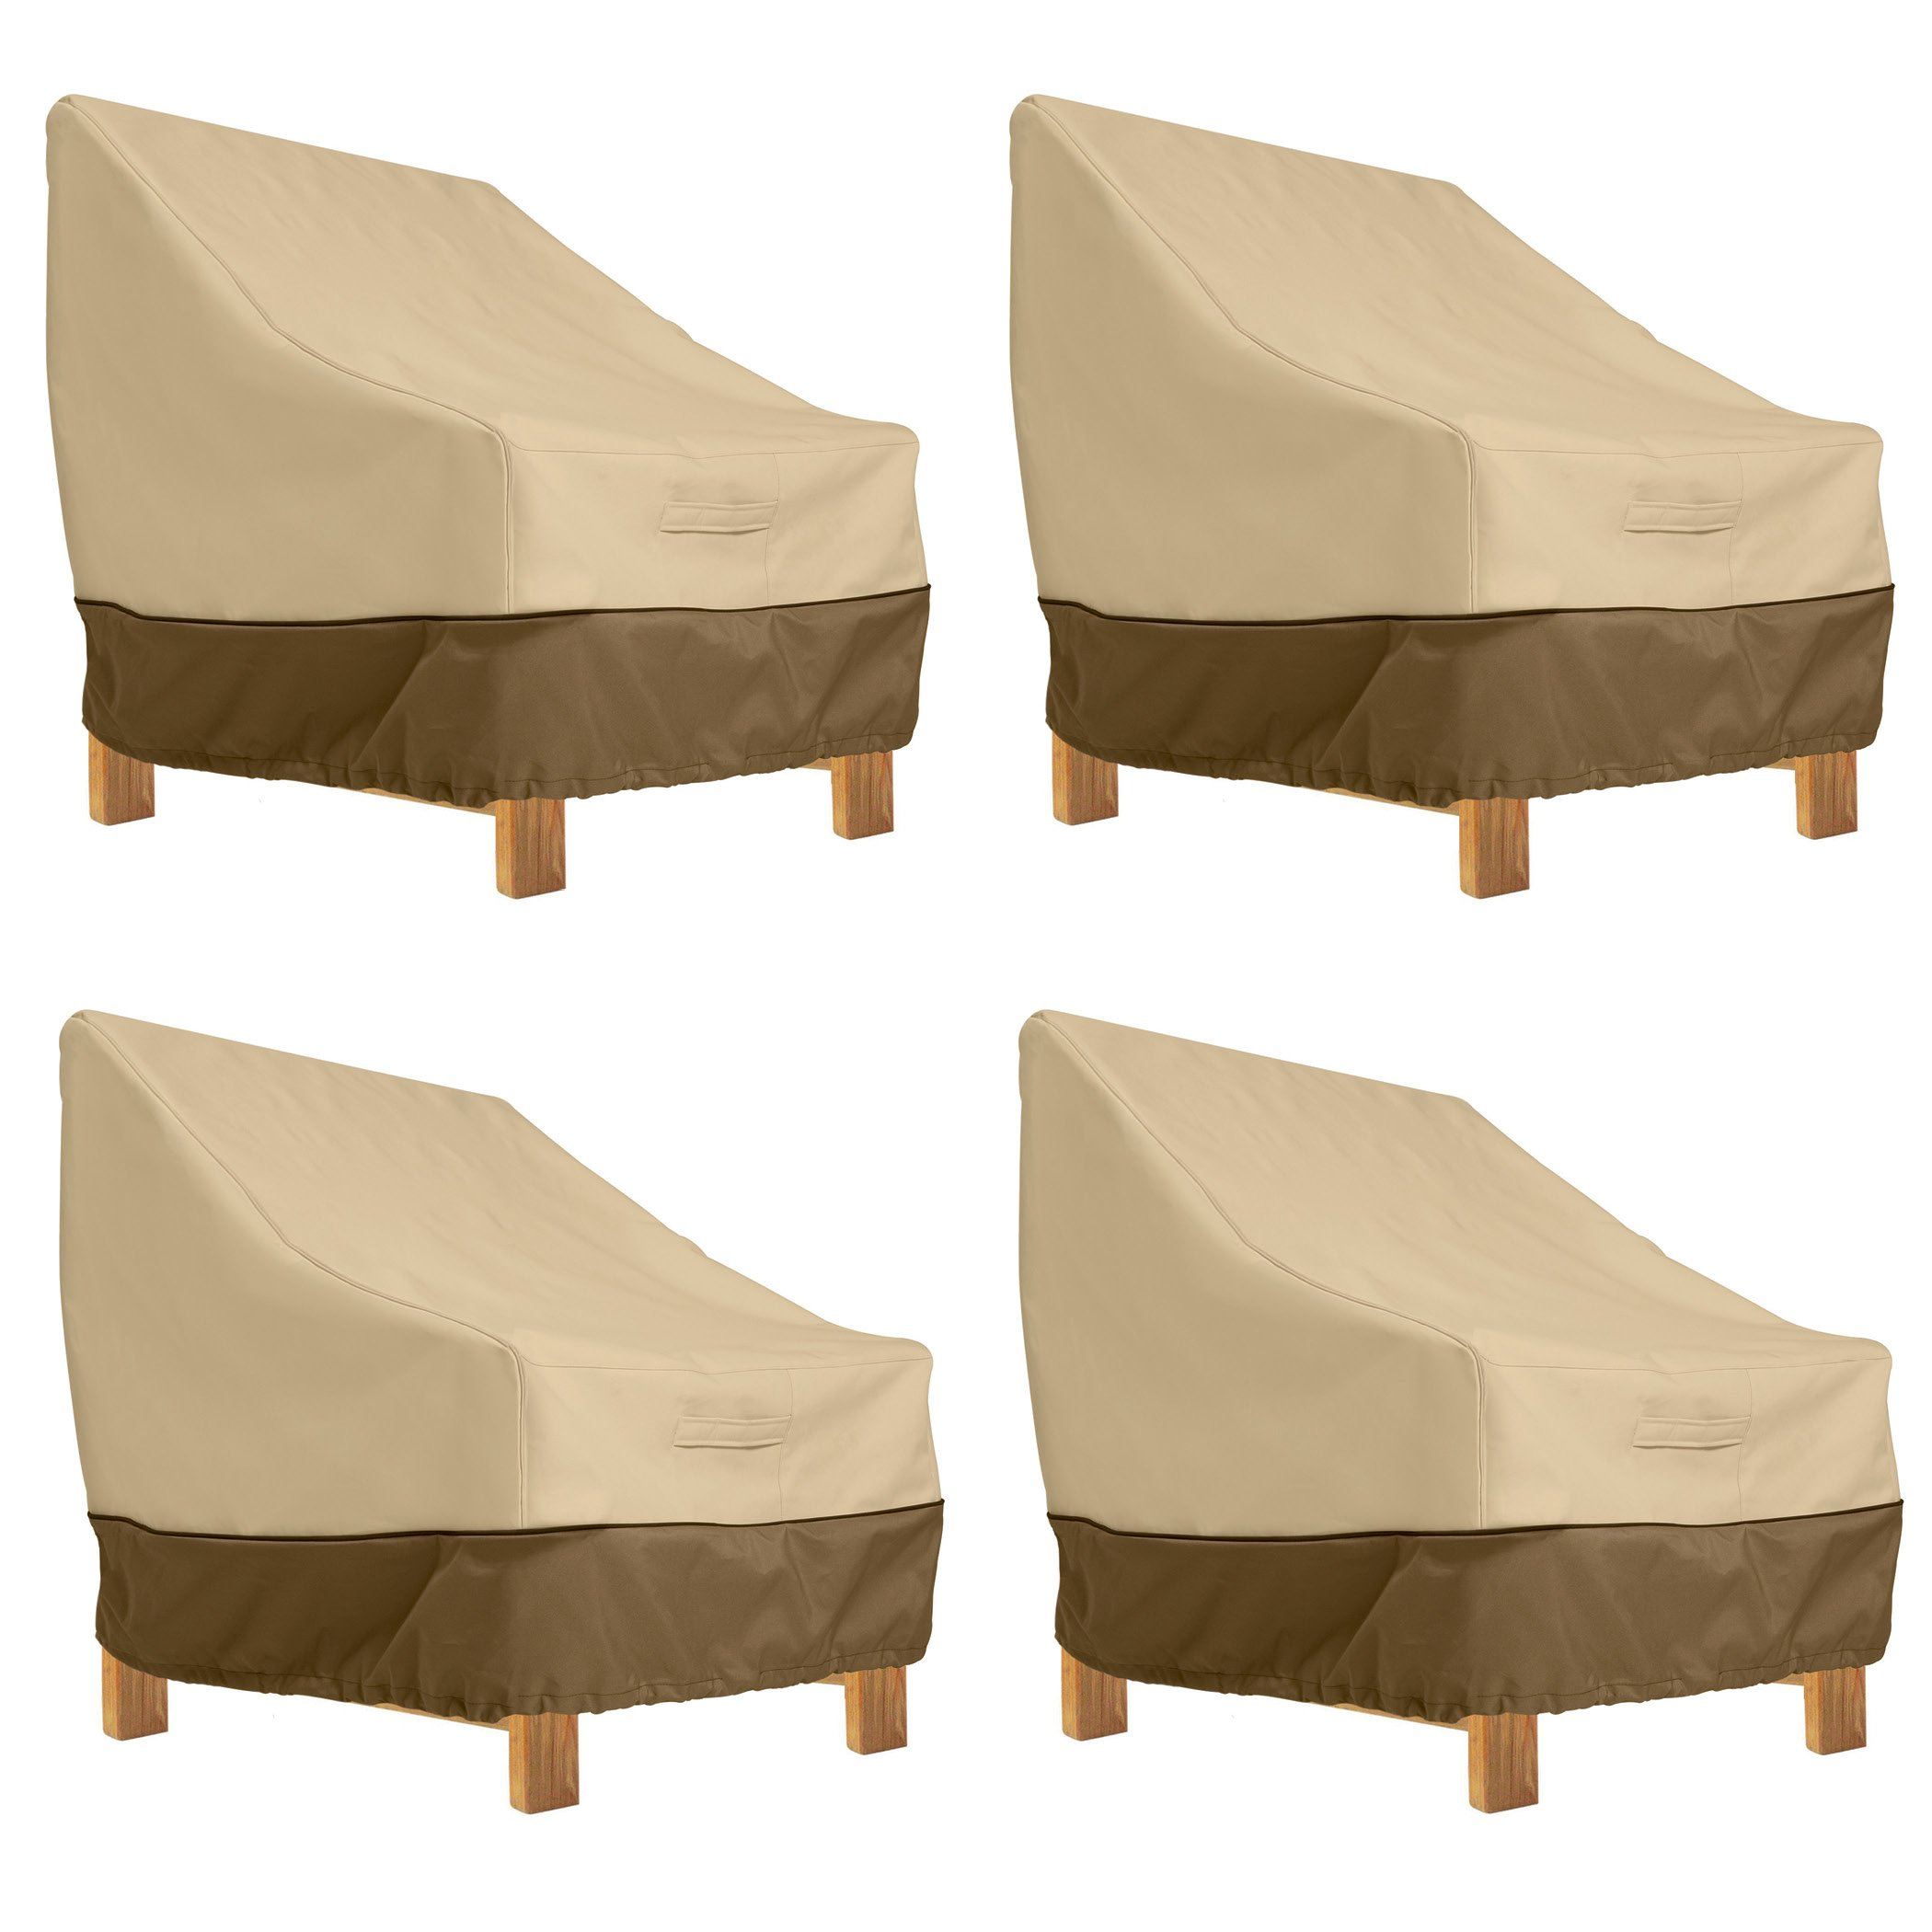 Classic Accessories Veranda Patio Deep Seat Lounge Chair Cover (4-Pack)